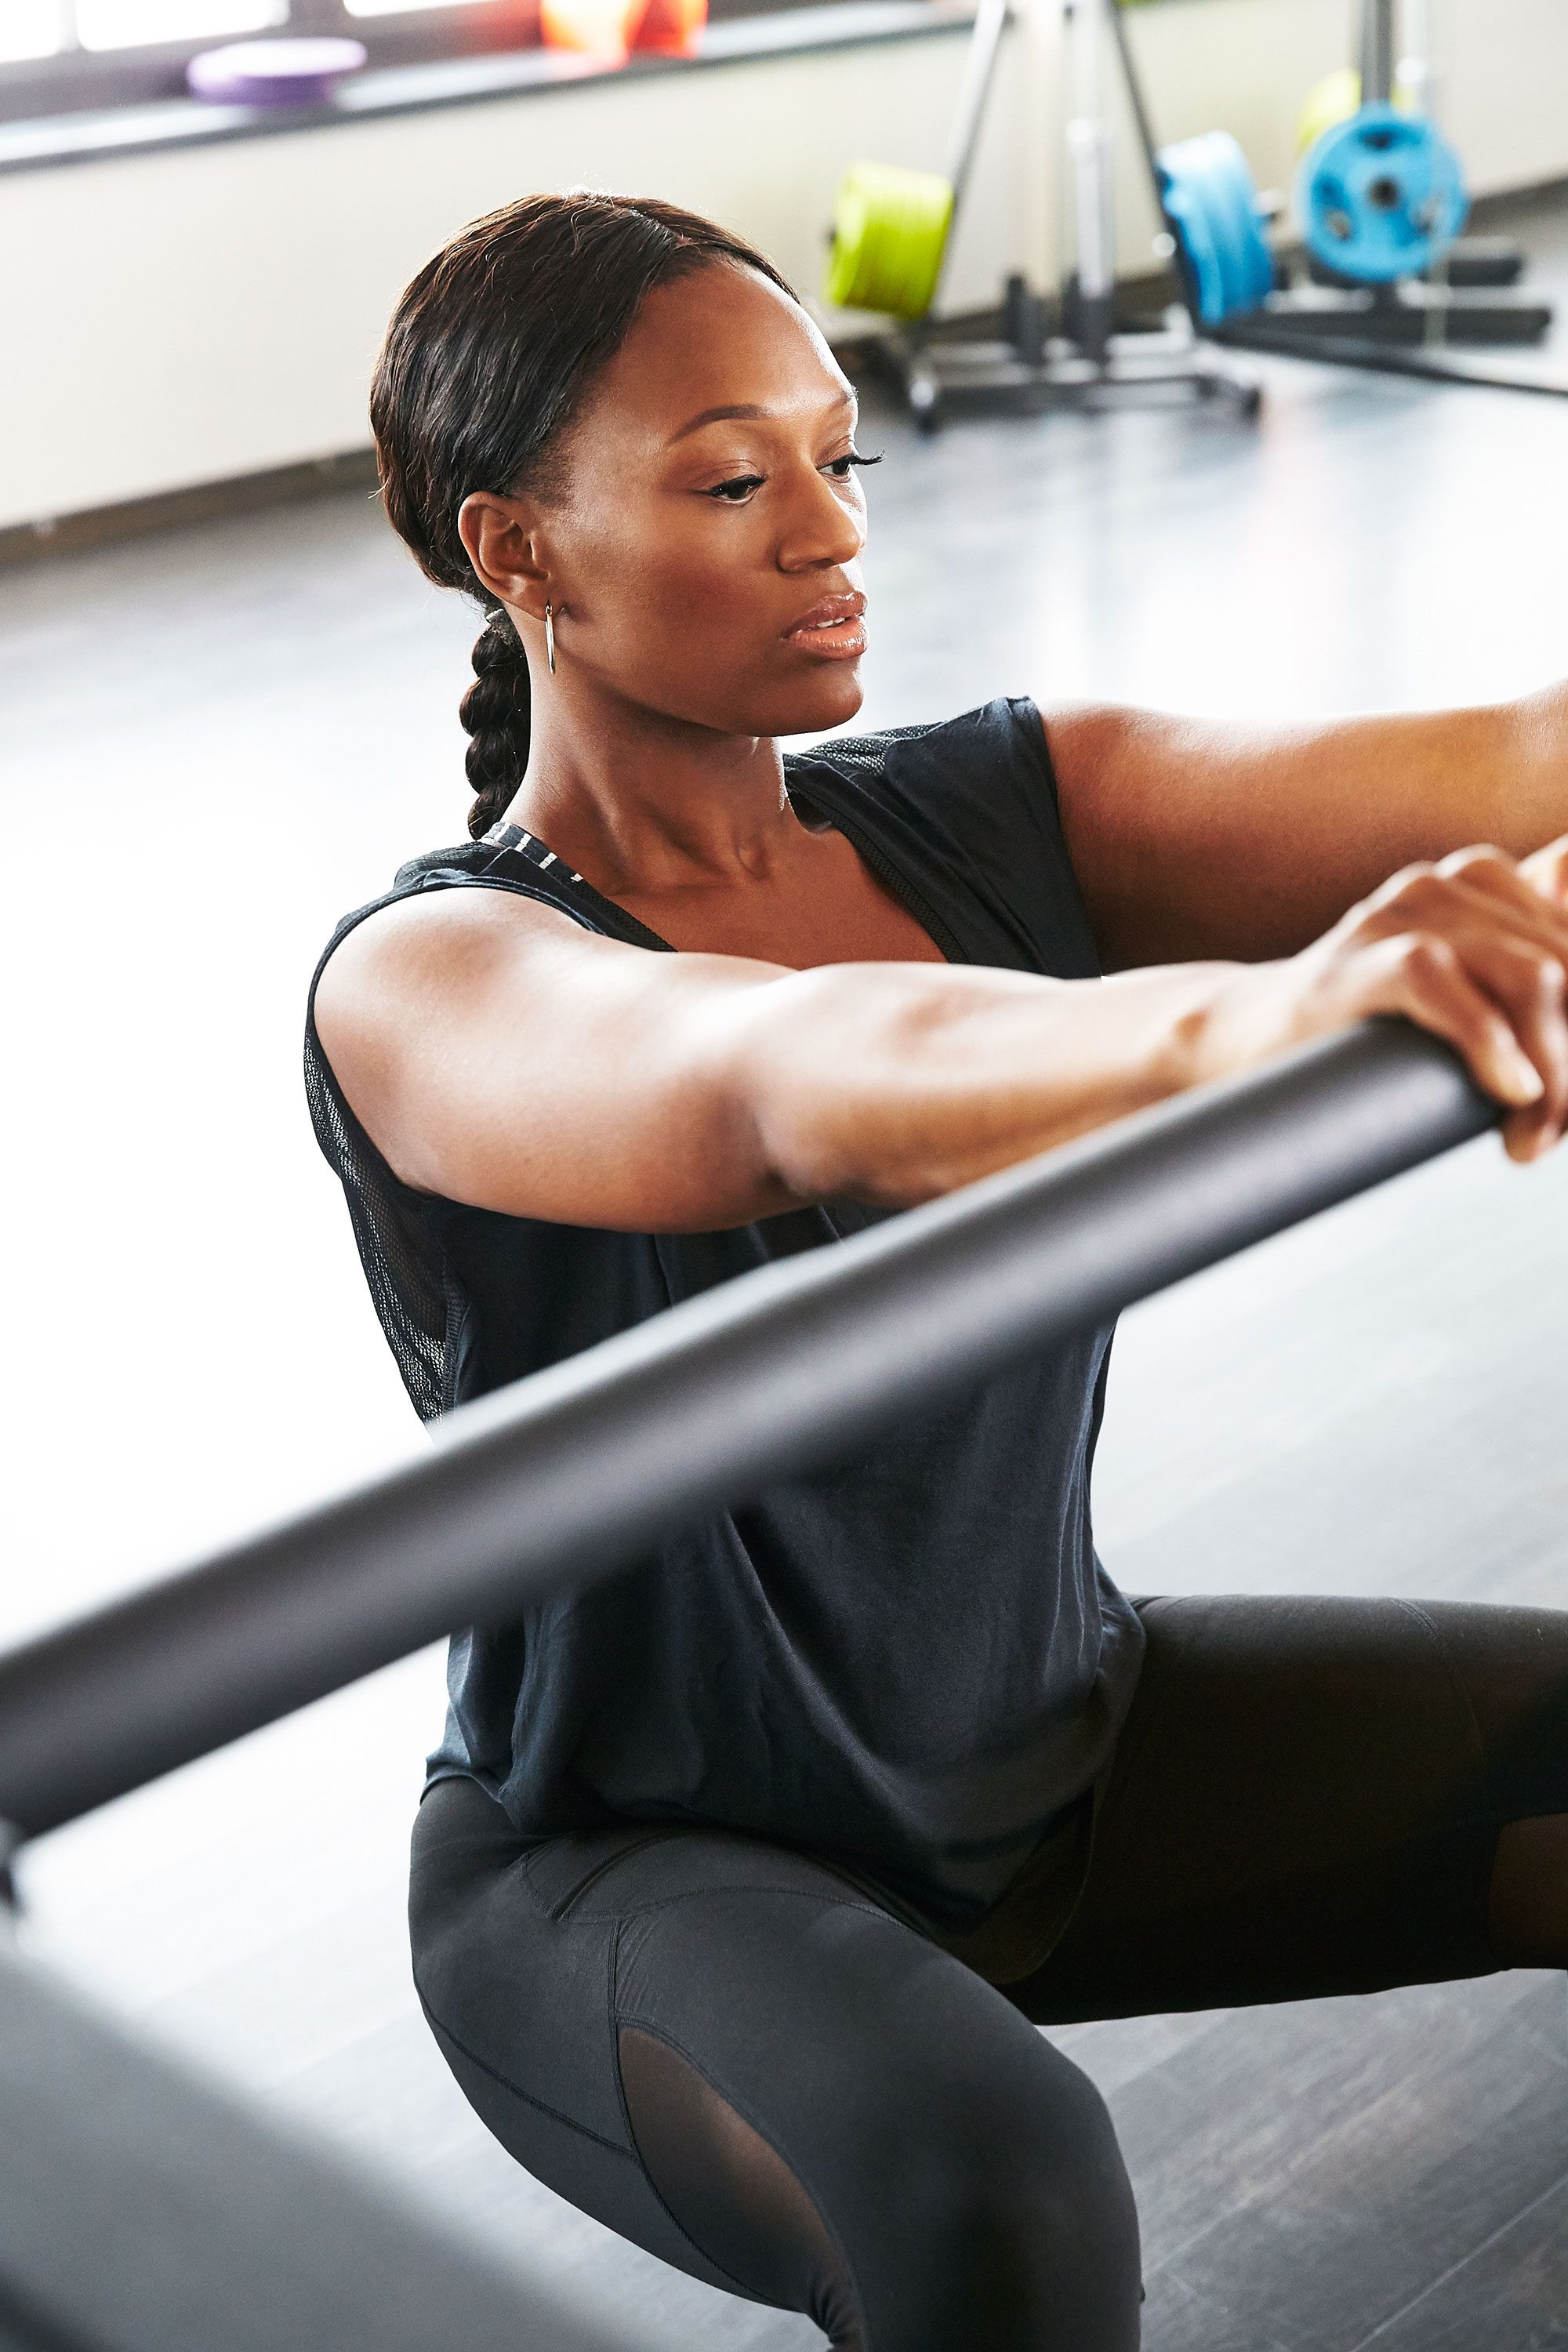 """<p>""""Warm up in a deep sitting position, while holding on to something for stability (a kitchen counter or the edge of your bed works), to mobilize the glutes and activate your back,"""" explains Pisano. """"This helps prepare your core for the intensive sequence.""""</p><p>Old Navy Light Support Ruched Cami Sports Bra in Black Stripe Top, $12, <a href=""""http://oldnavy.gap.com/browse/product.do?cid=1031681&vid=1&pid=429321142"""" target=""""_blank"""">oldnavy.com</a>&#x3B; Nike T-Shirt With Back Panel Detail, $53.75, <a href=""""http://www.asos.com/Nike/Nike-T-Shirt-With-Back-Panel-Detail/Prod/pgeproduct.aspx?iid=5839328&istCompanyId=6f061ed0-7427-4b6c-bb90-987c0bd08468&istItemId=qwrrwtlxx&istBid=tztx&affid=14173&channelref=google+shopping&utm_source=google&utm_medium=ppc&utm_term=65701215872&utm_content=&utm_campaign=&cvosrc=ppc.google.65701215872&network=g&mobile=&search=1&content=&creative=84679695741&ptid=65701215872&adposition=1o1&r=2&mk=ab&gclid=CjwKEAiA2IO0BRDXmLndksSB0WgSJADNKqqoIVvvmFsFKL65ykts8W1CpgiHbVgsRoDv4-ueDe1erhoCfZrw_wcB"""" target=""""_blank"""">asos.com</a>&#x3B; Old Navy Mesh-Panel Compression Leggings in Blackjack, $32.94, <a href=""""http://oldnavy.gap.com/browse/product.do?cid=53935&vid=1&pid=597001002"""" target=""""_blank"""">oldnavy.com</a>&#x3B; Nike Air Zoom Fit Agility 2 in Black/White, $130, <a href=""""http://store.nike.com/us/en_us/pd/air-zoom-fit-agility-2-training-shoe/pid-10337859/pgid-10337860"""" target=""""_blank"""">nike.com</a></p>"""